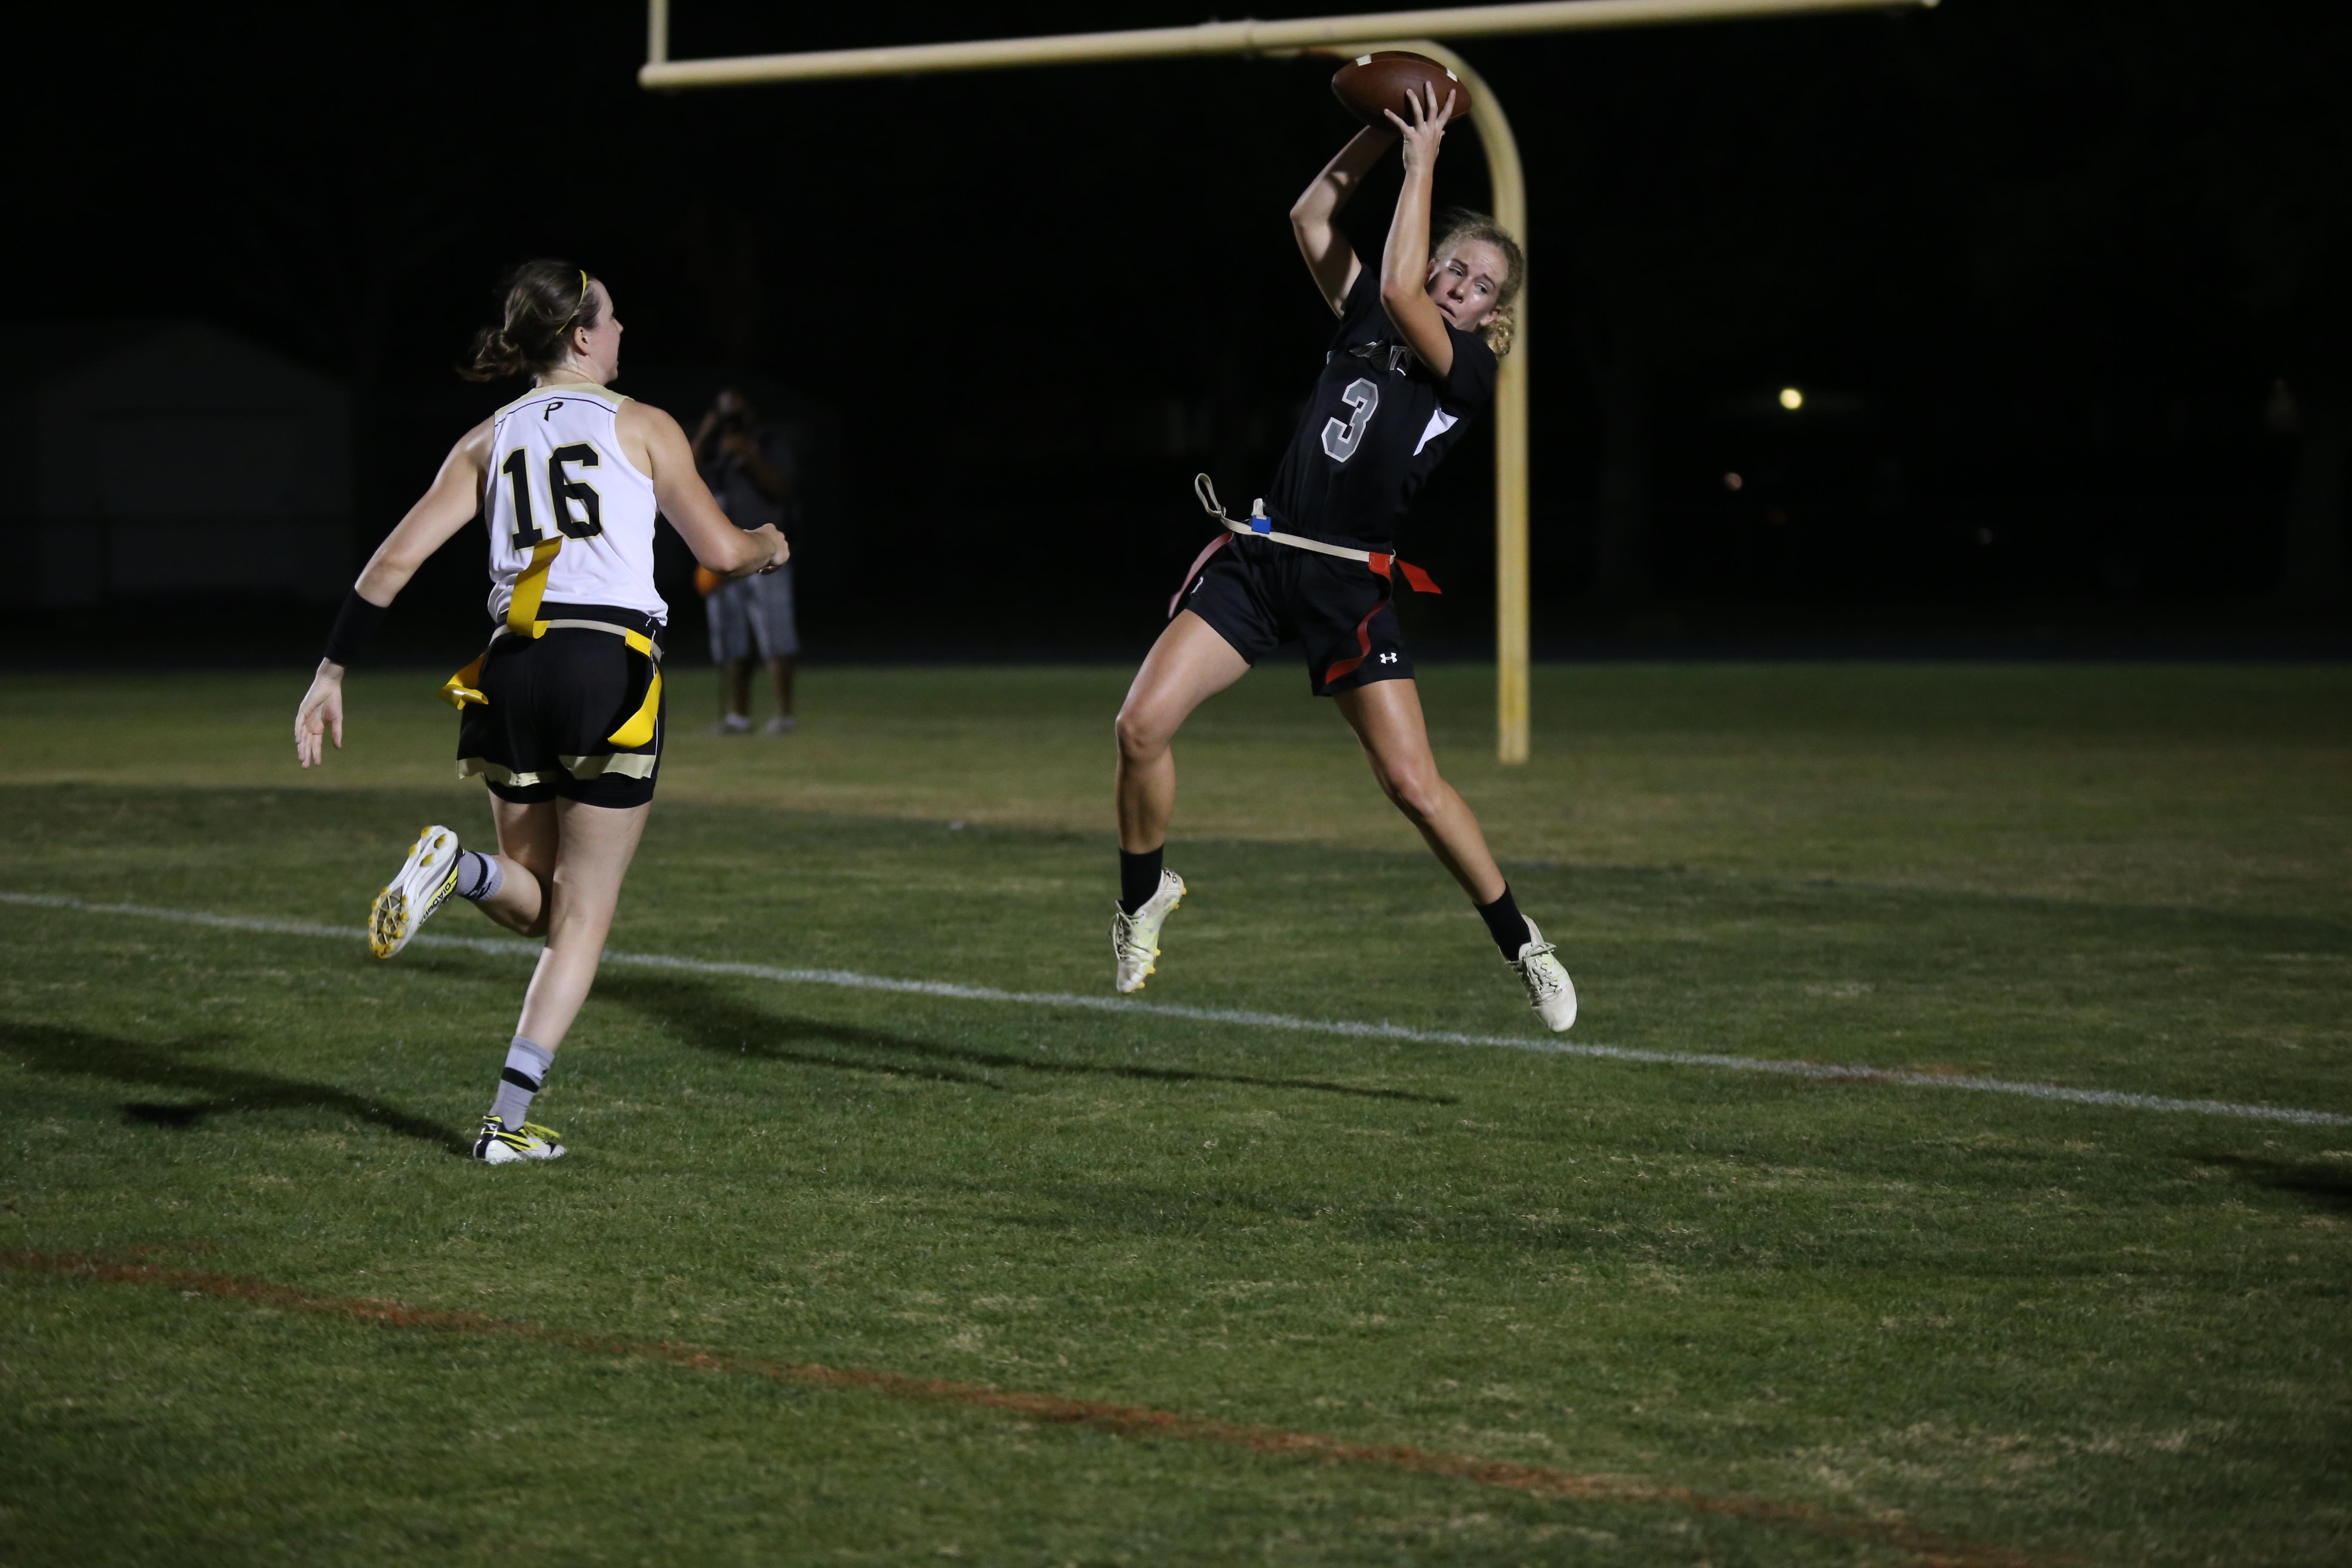 Emily Draper ('17) makes a jumping catch to get the extra point and tie the game at 14 in the fourth quarter.